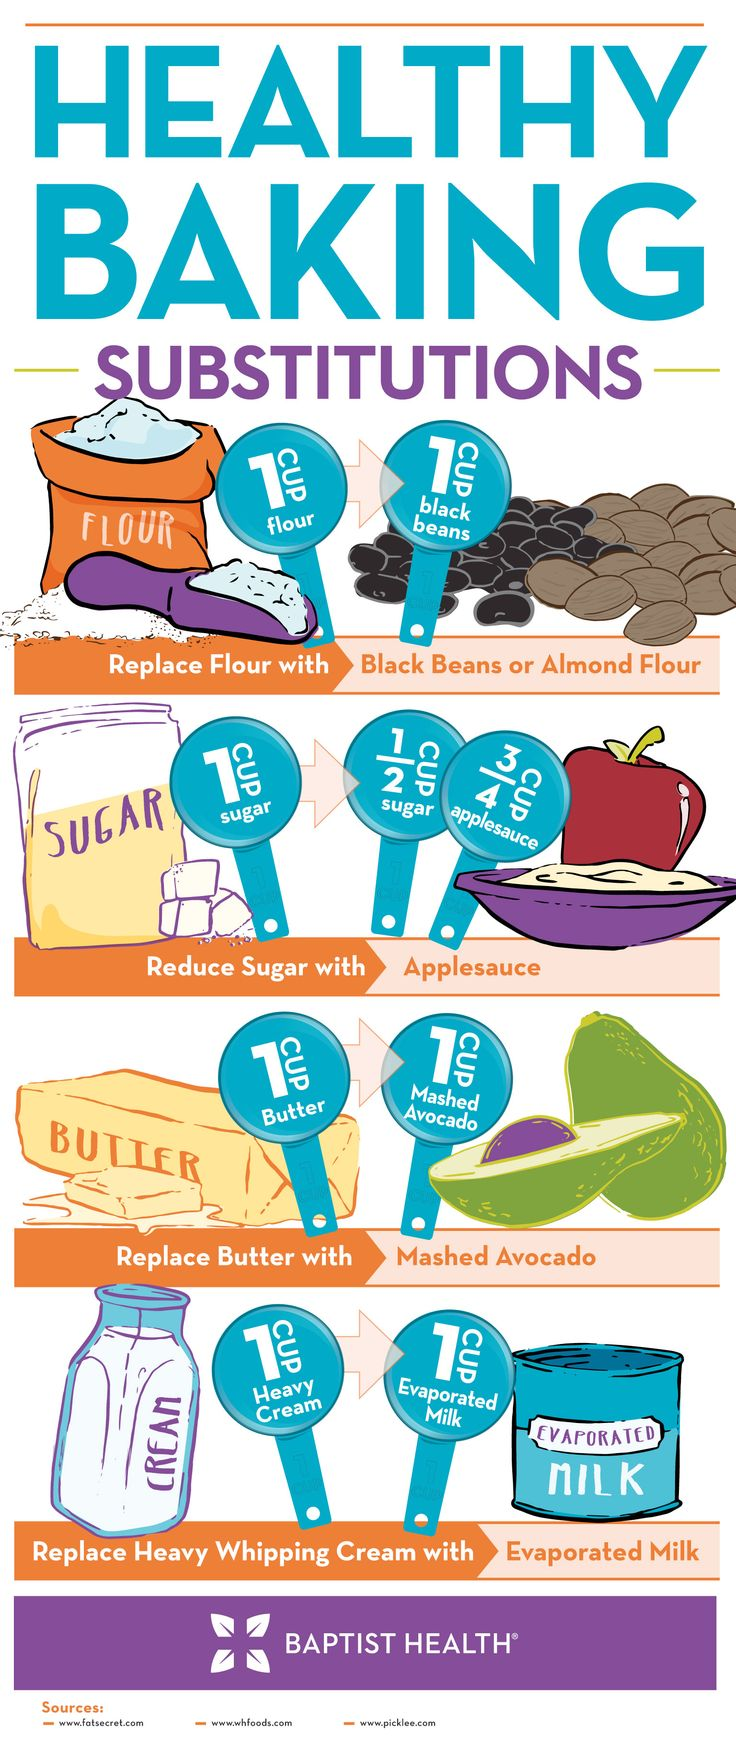 Baking can be a bittersweet experience. The extra calories consumed can cause guilt and unwanted weight gain. However, there are healthy baking substitutes that can be used instead without giving up the flavor.  	Flour – Looking for a flour substitute? Black beans may seem like an unusual substitute, but by using black bean puree in exchange